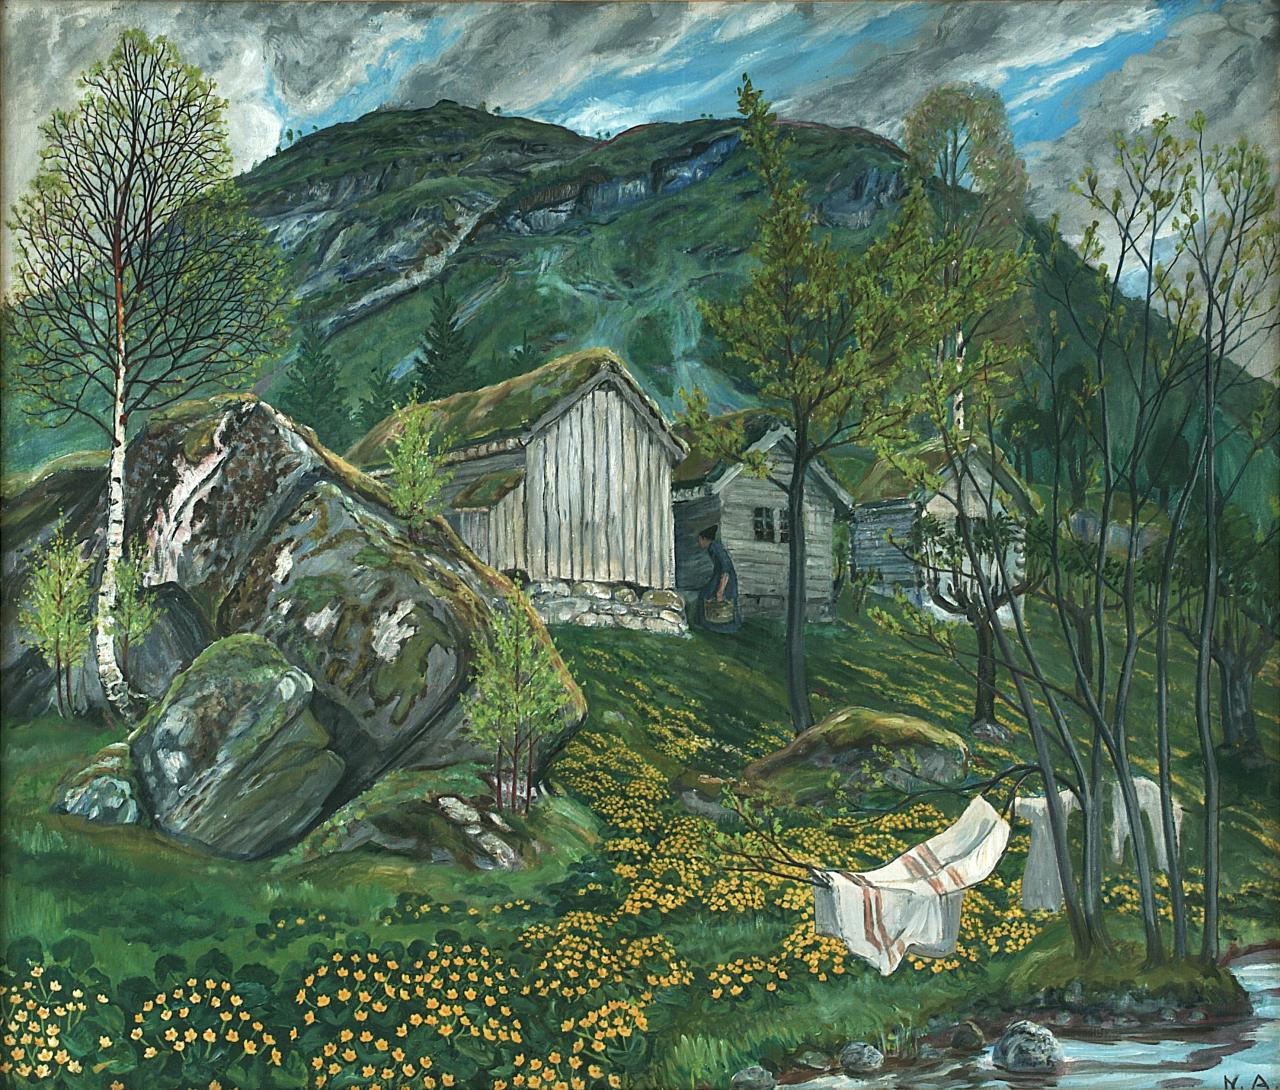 'Spring Mood by Old Cotter's Farm.' Image: Courtesy of Nikolai-Astrup.no. Unauthorized use is prohibited.